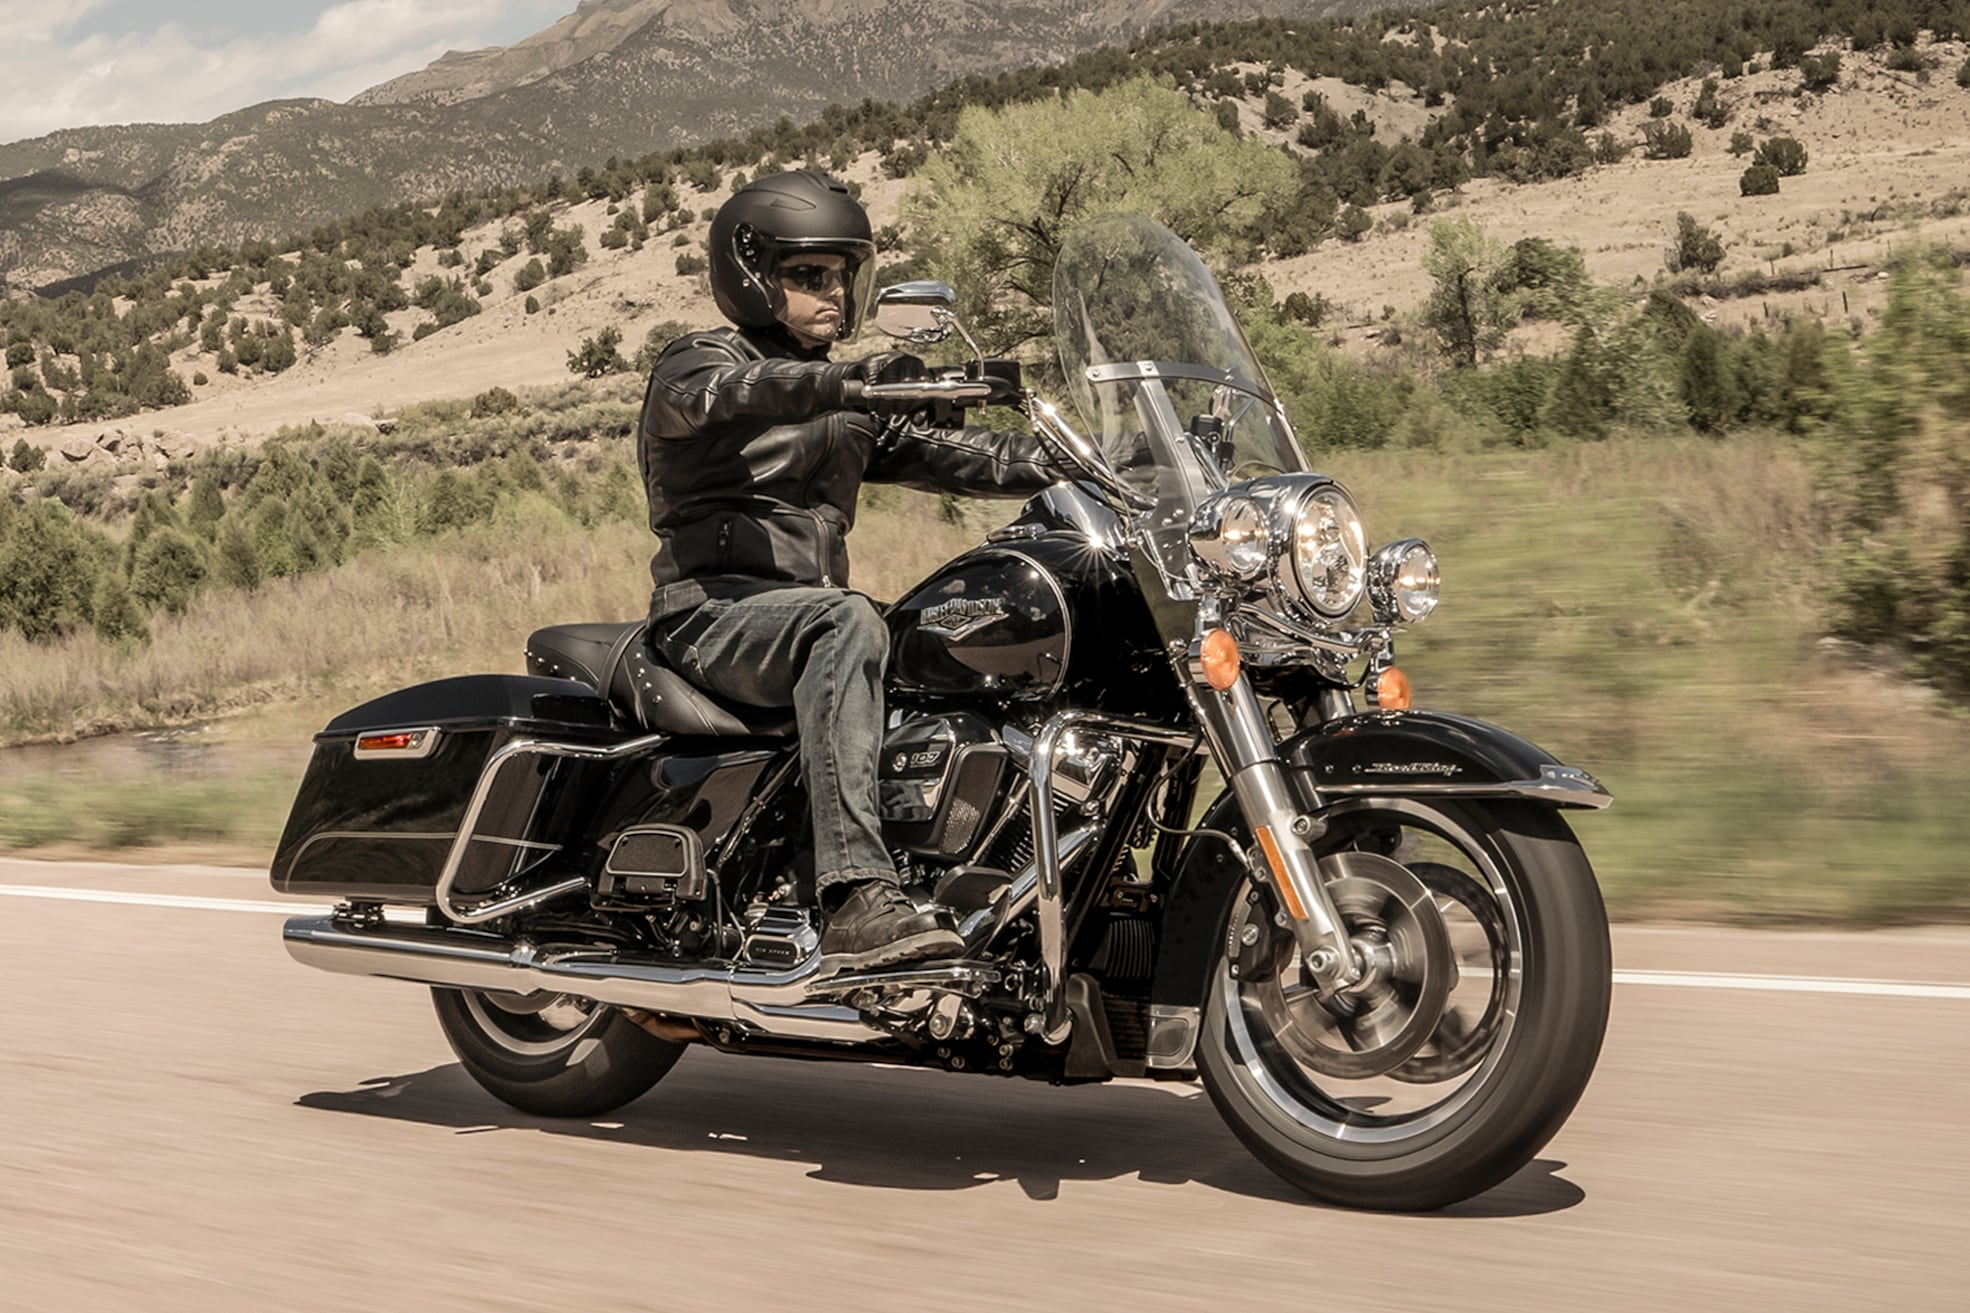 Person riding Harley-Davidson 2020 Road King motorcycle